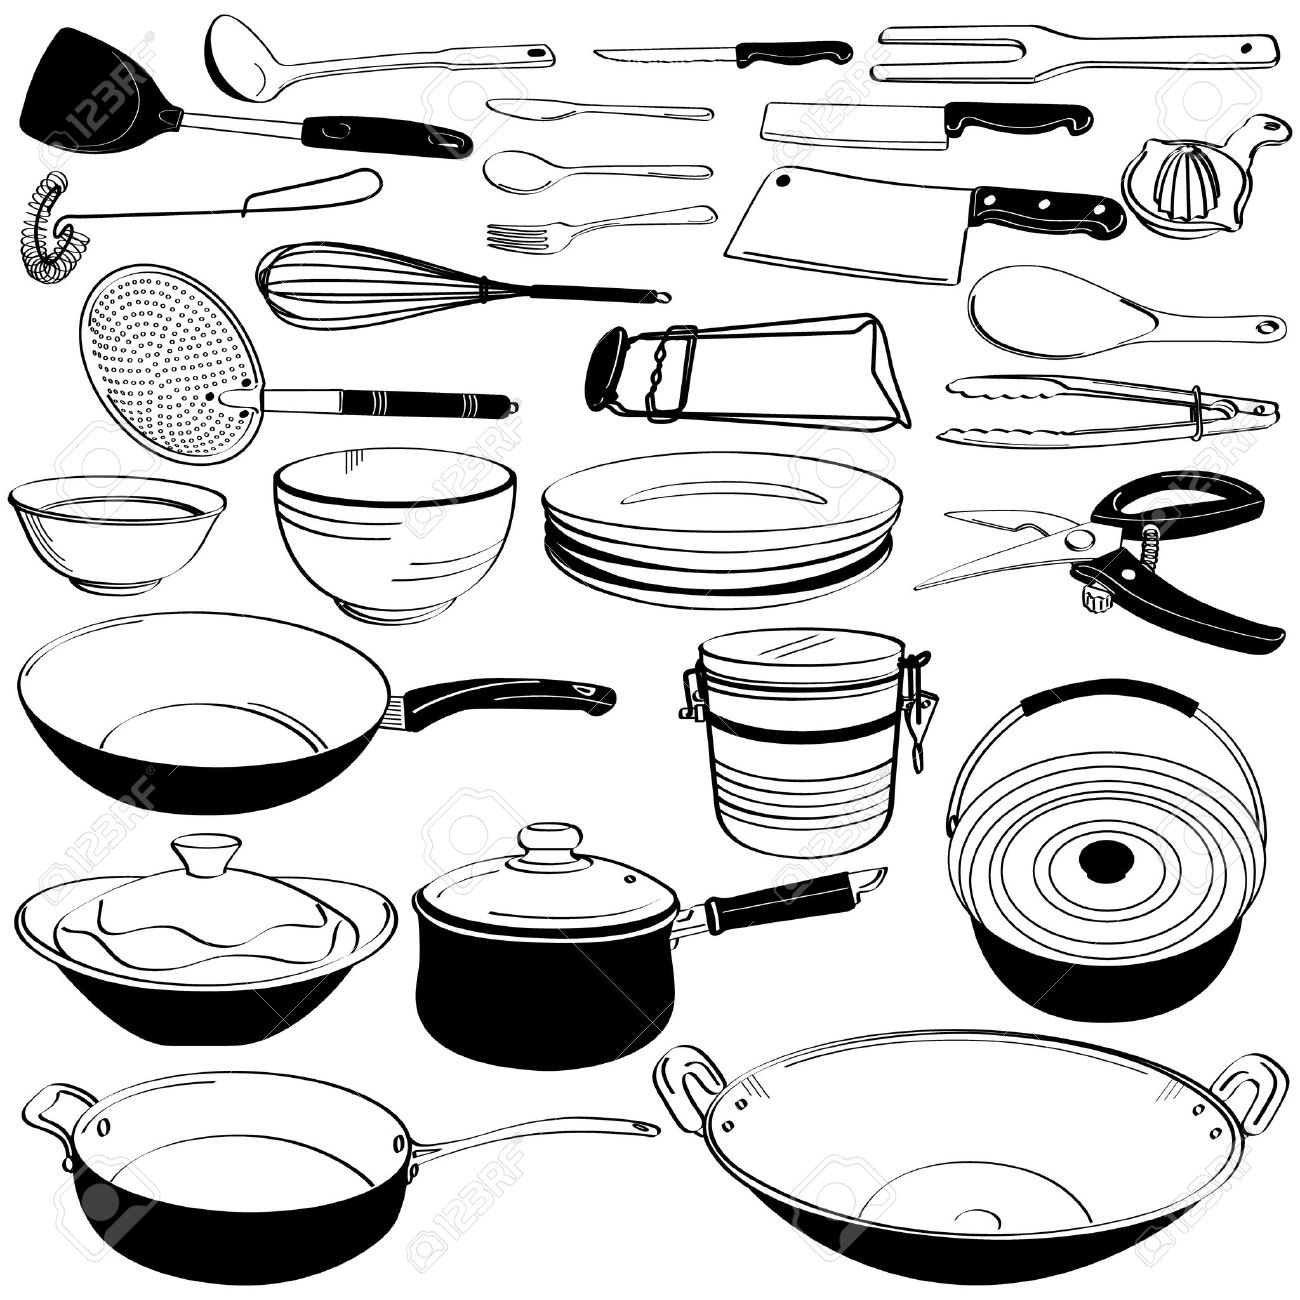 Kitchen Tools And Equipment Kitchen Tool Utensil Equipment Doodle Drawing Sketch Royalty Free